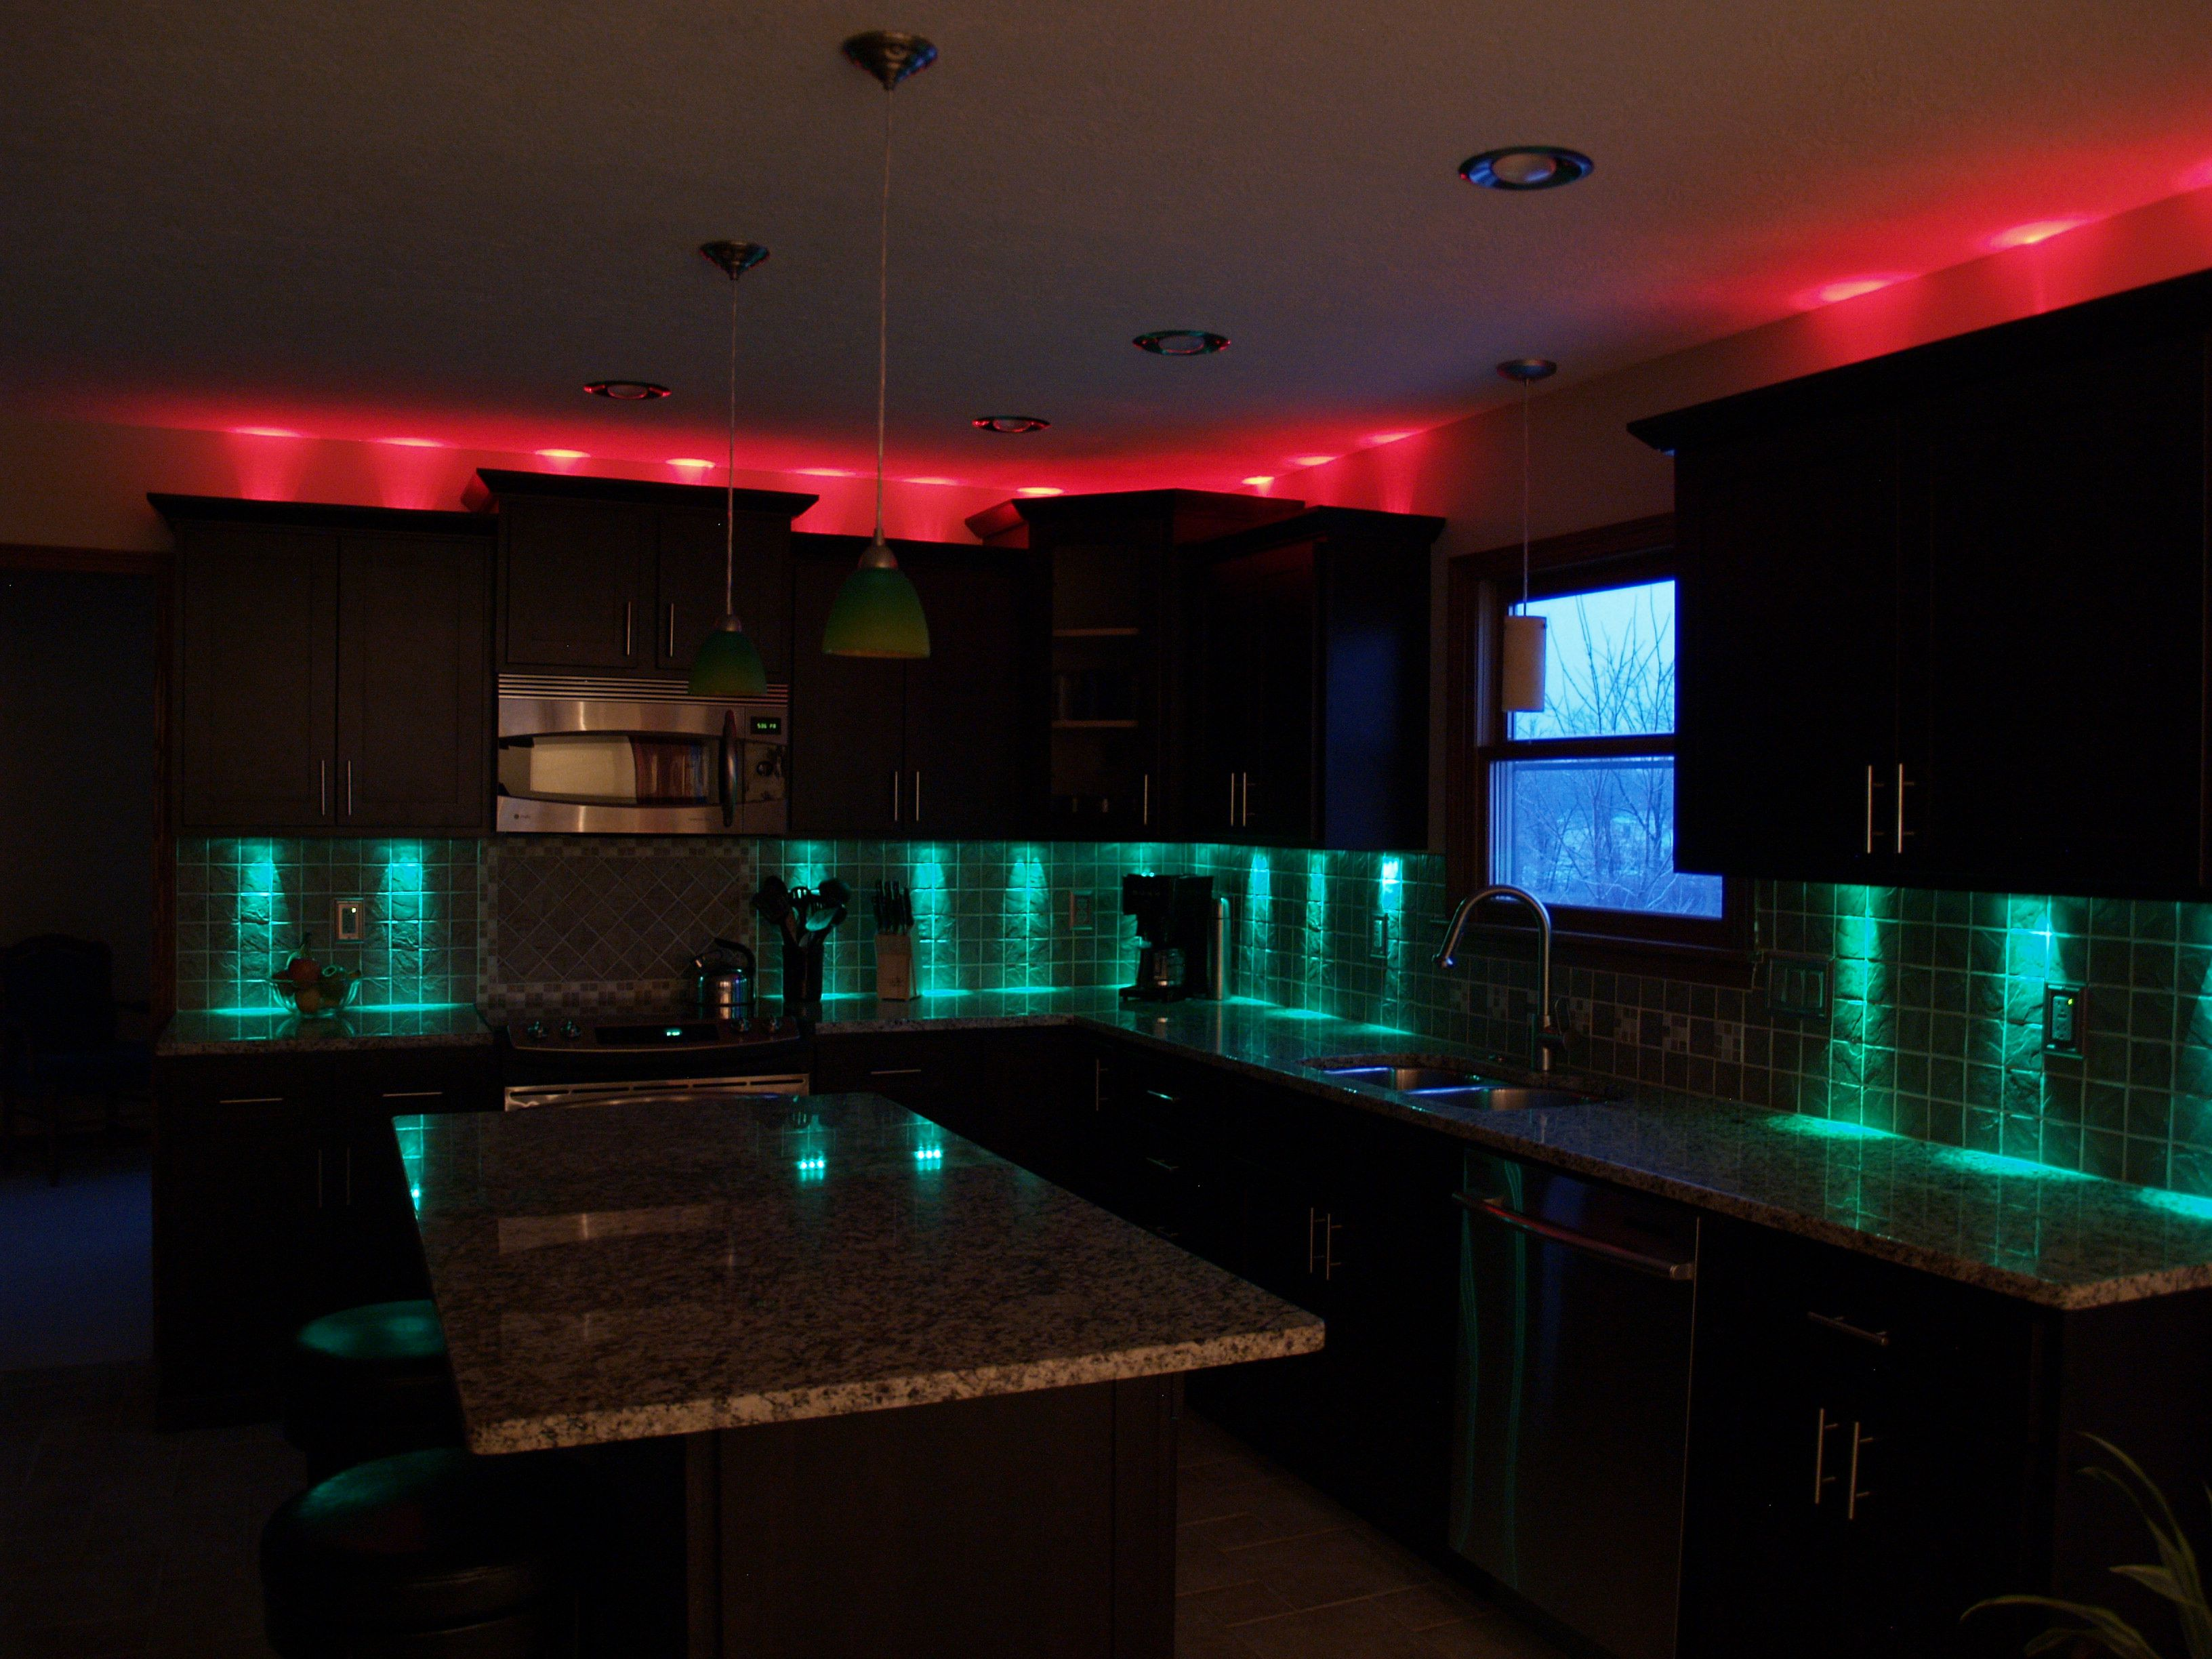 Led Kitchen Lighting For Smart Family 8 Choices Schrankbeleuchtung Beleuchtung Led